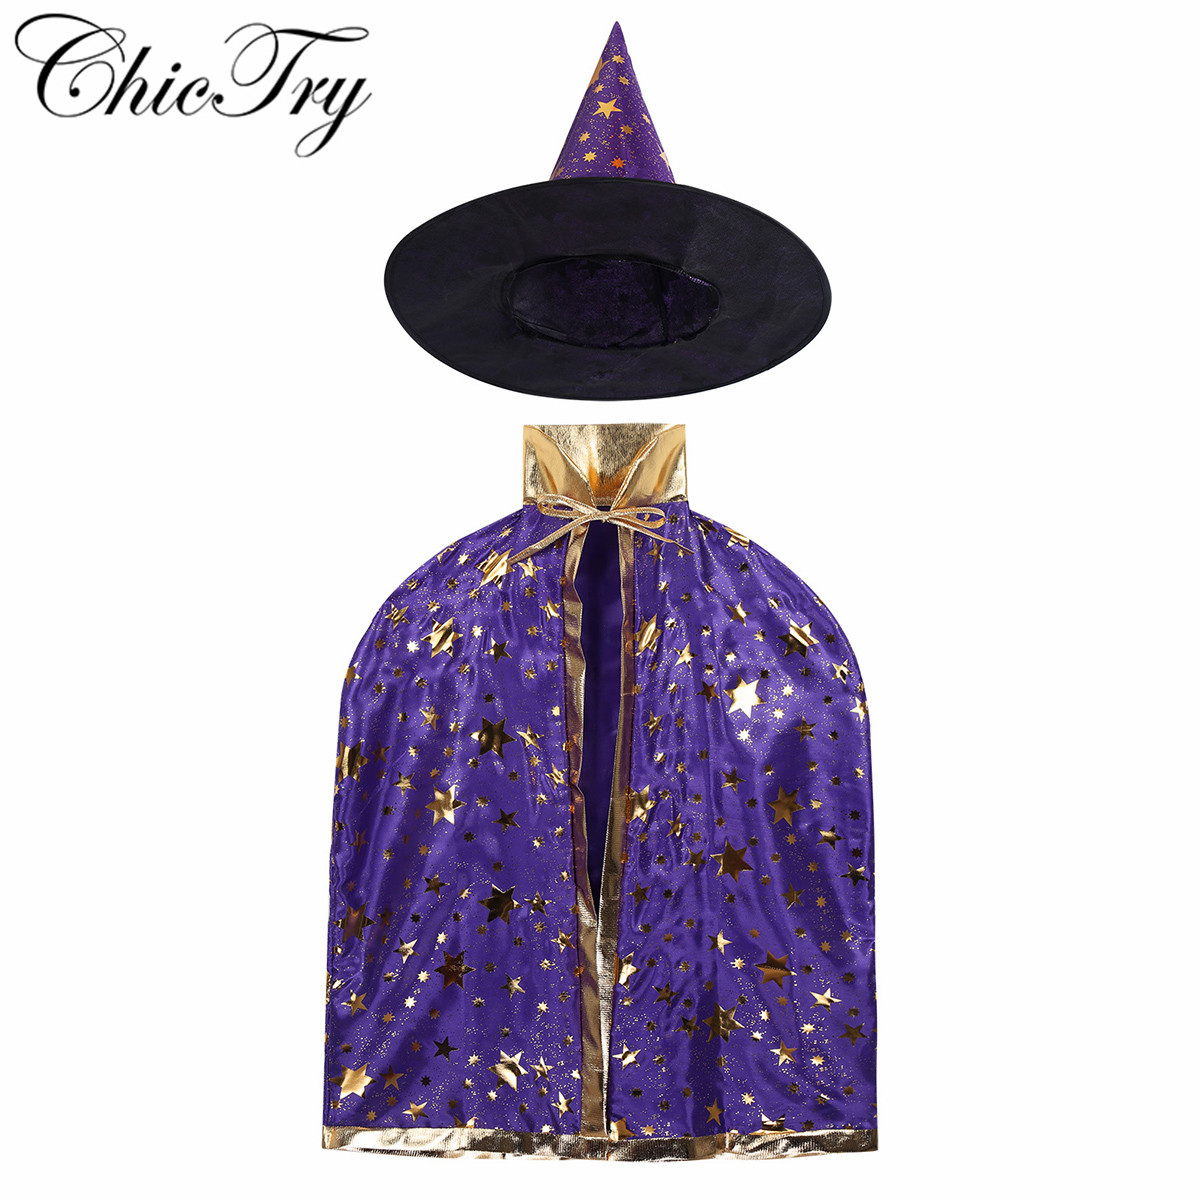 Kids Children Halloween Carnival Costumes Outfit Witch Wizard Cloak Cape With Pointed Hat Outfit Set For Cosplay Party Dress Up